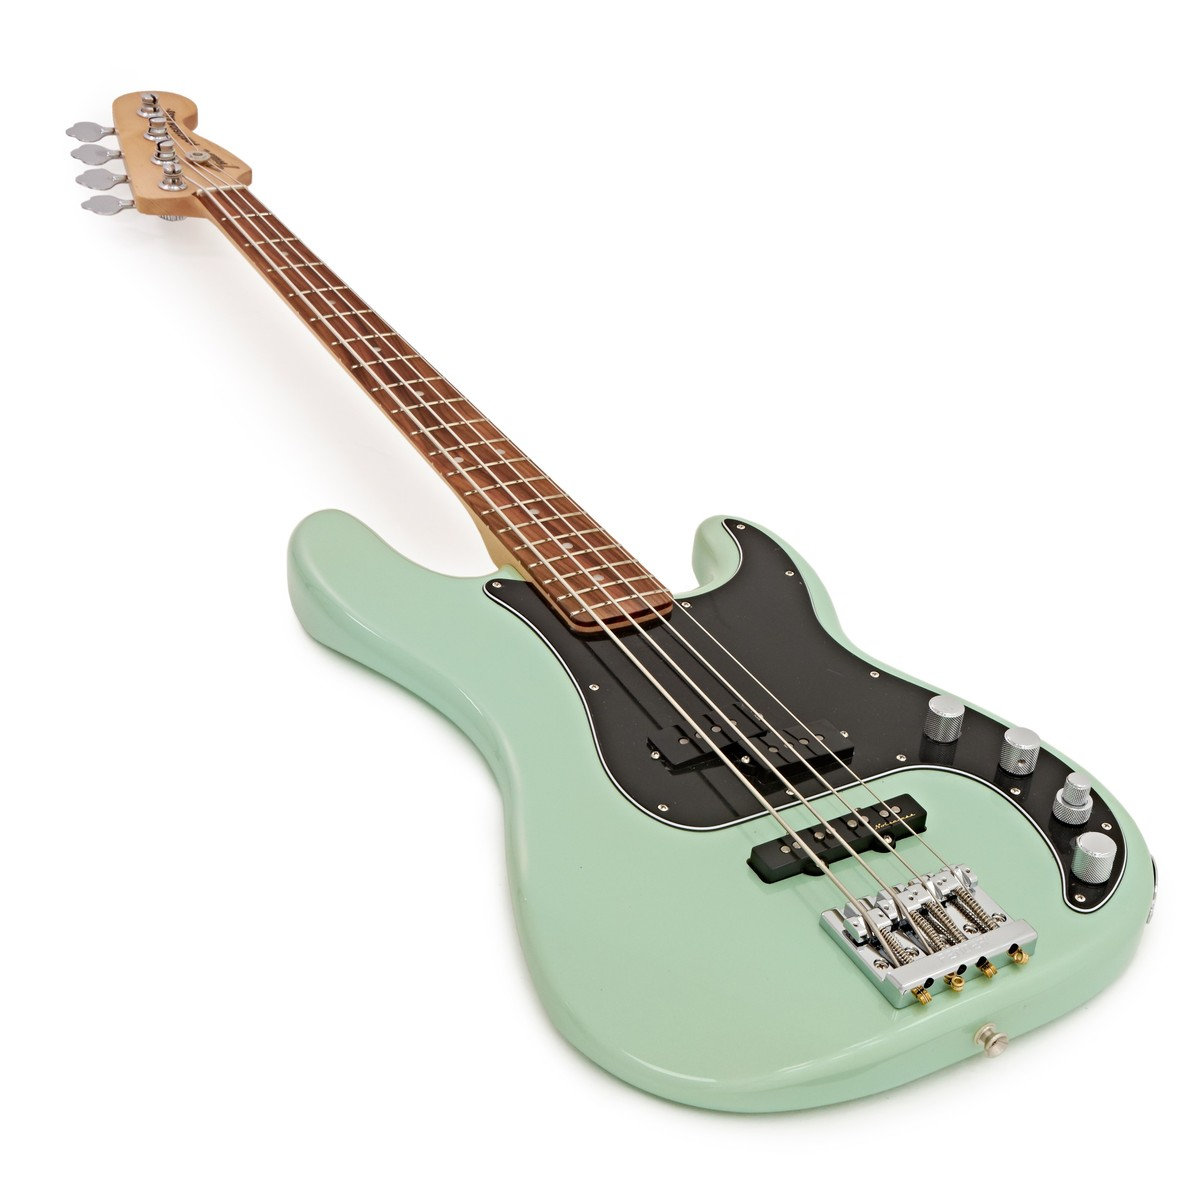 fender deluxe active p bass special pau ferro surf pearl at gear4music. Black Bedroom Furniture Sets. Home Design Ideas